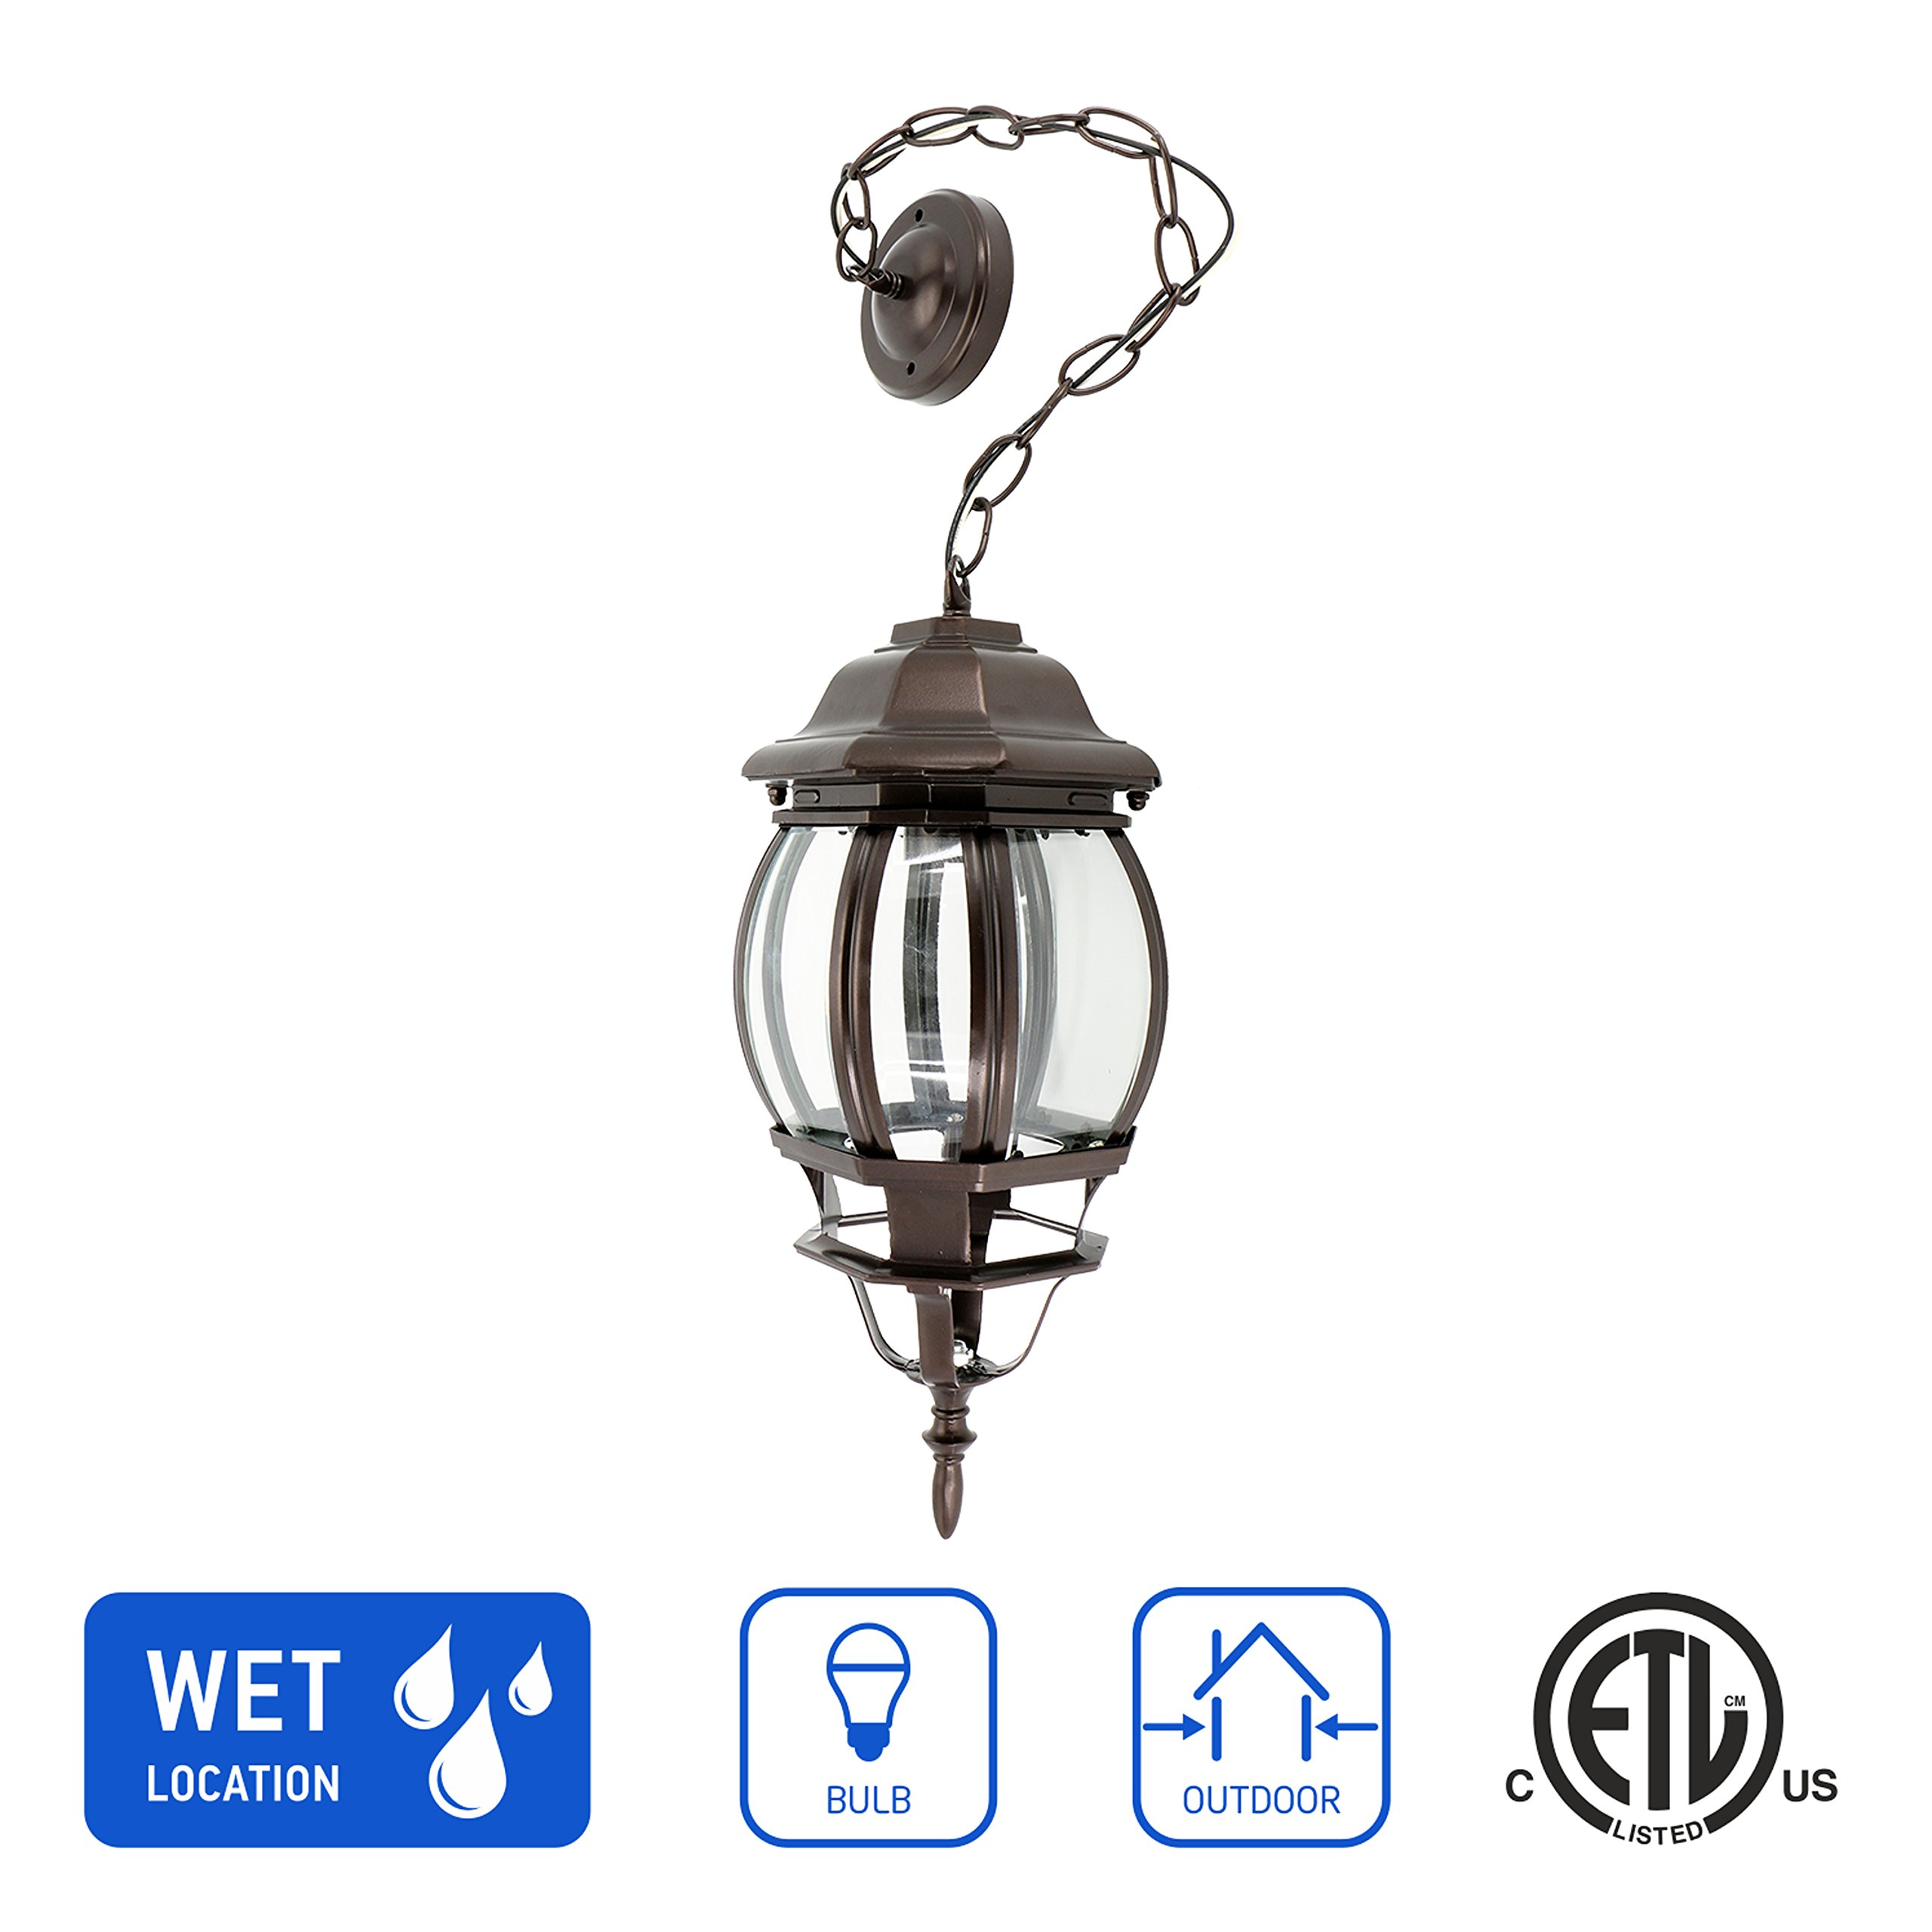 in Home 1-Light Outdoor Pendant Lantern L08 Series Traditional Design Bronze Finish Clear Glass Shade, ETL Listed